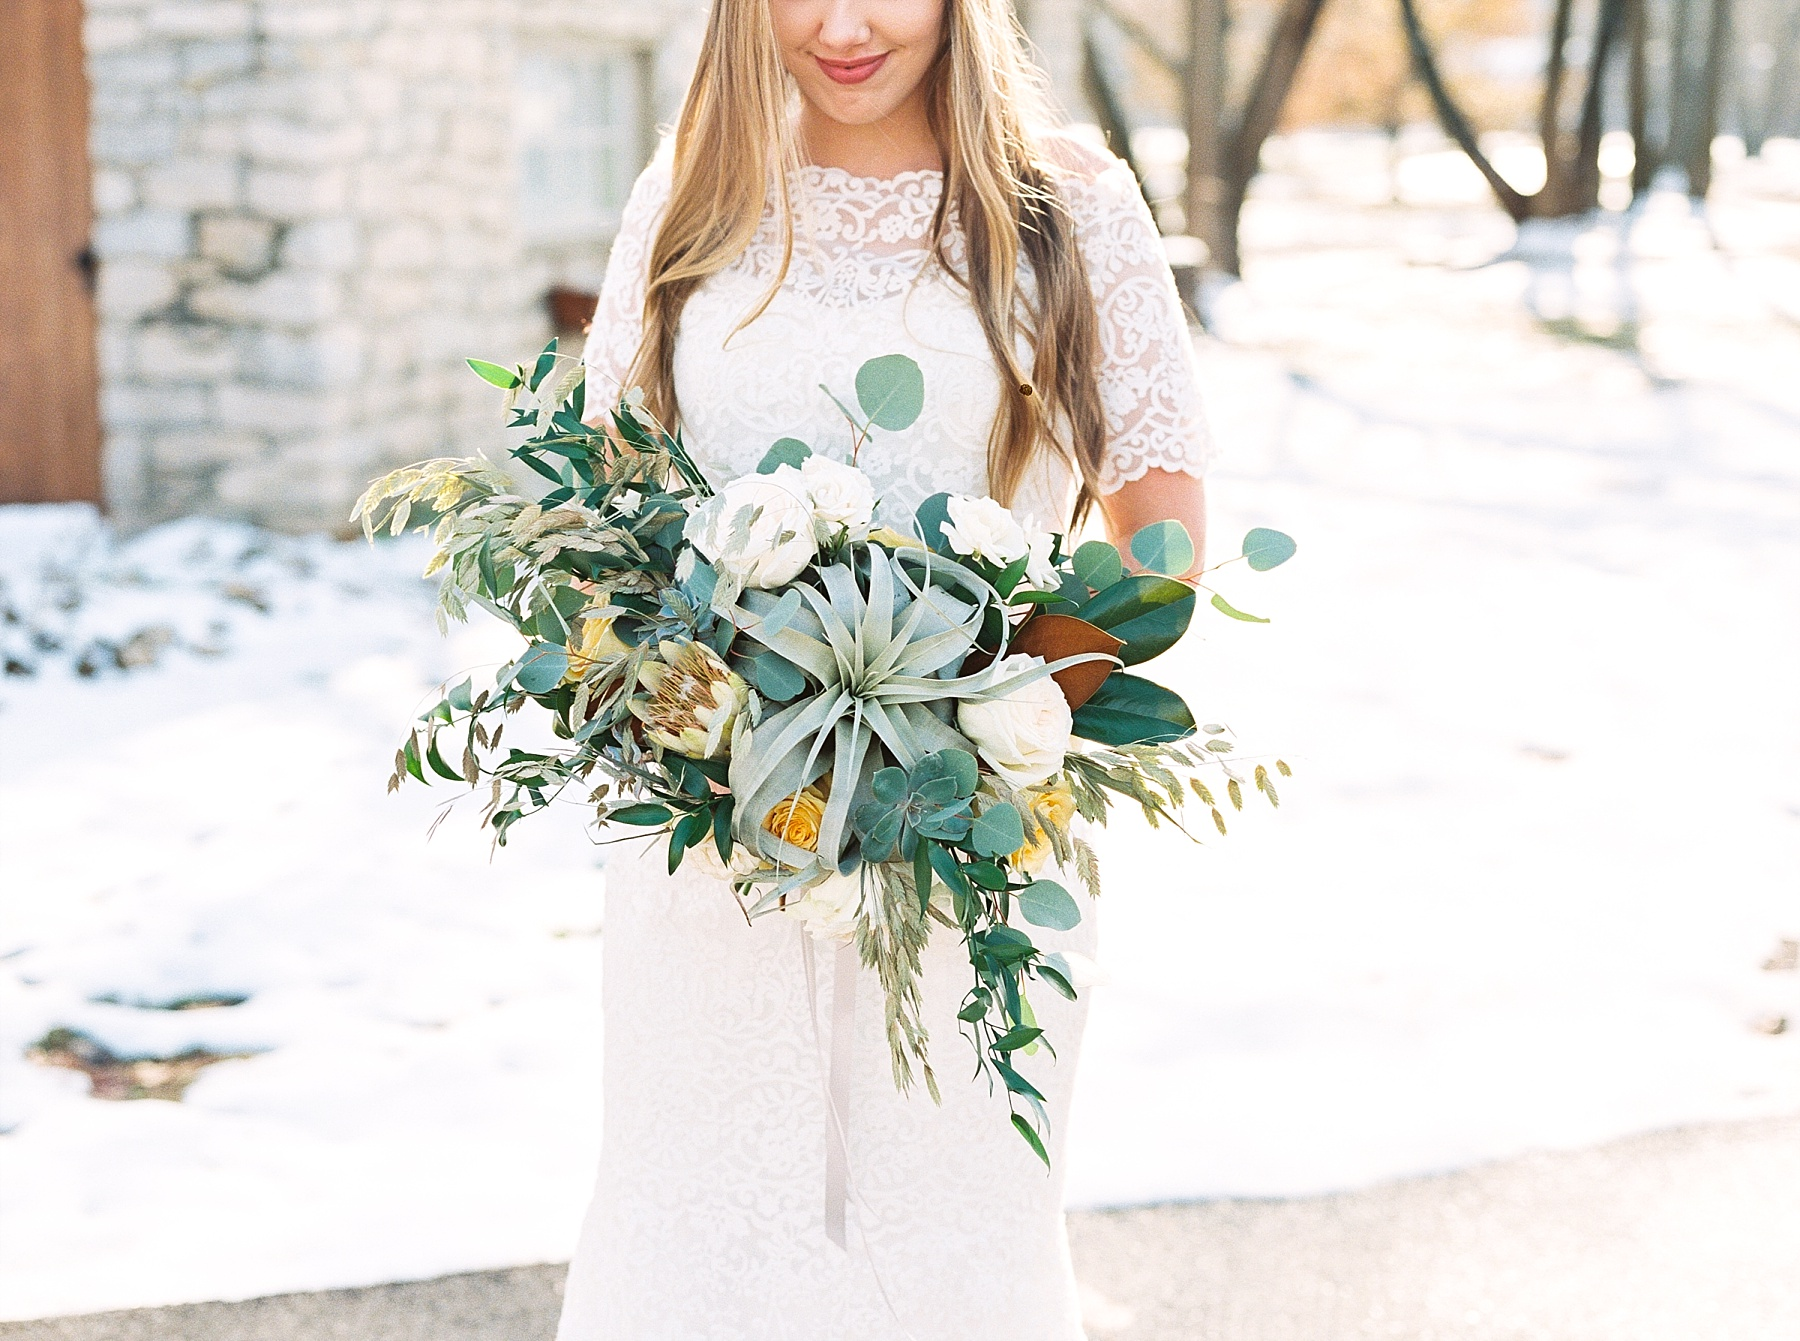 Snowy Winter Wedding at Wildcliff Events Lake With Earthy Jewel Tones and Organic Refined Style by Kelsi Kliethermes Photography Kansas City Missouri Wedding Photographer_0038.jpg